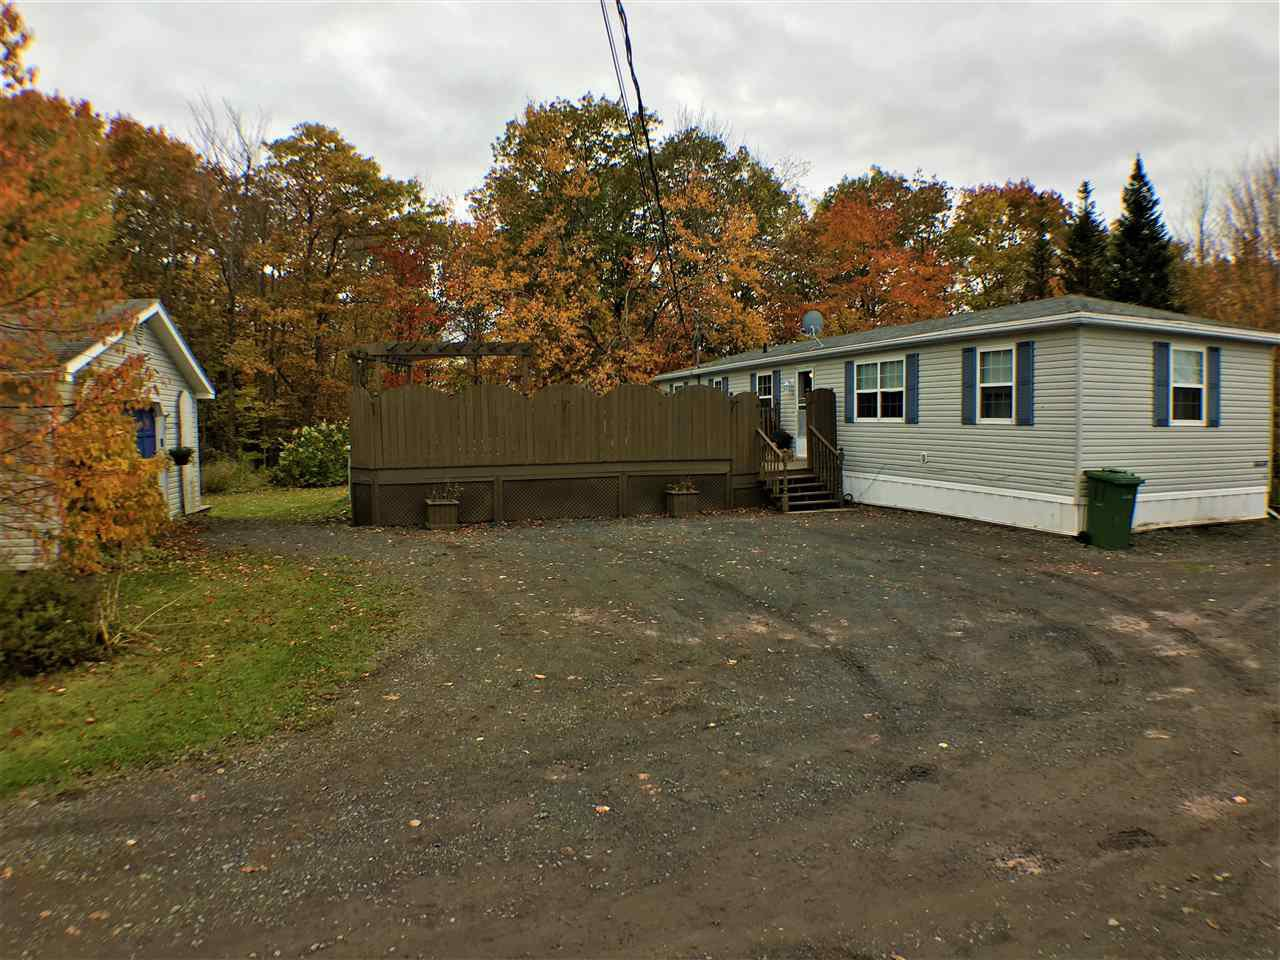 Main Photo: 41 Hines Lane in Plymouth: 108-Rural Pictou County Residential for sale (Northern Region)  : MLS®# 201924745